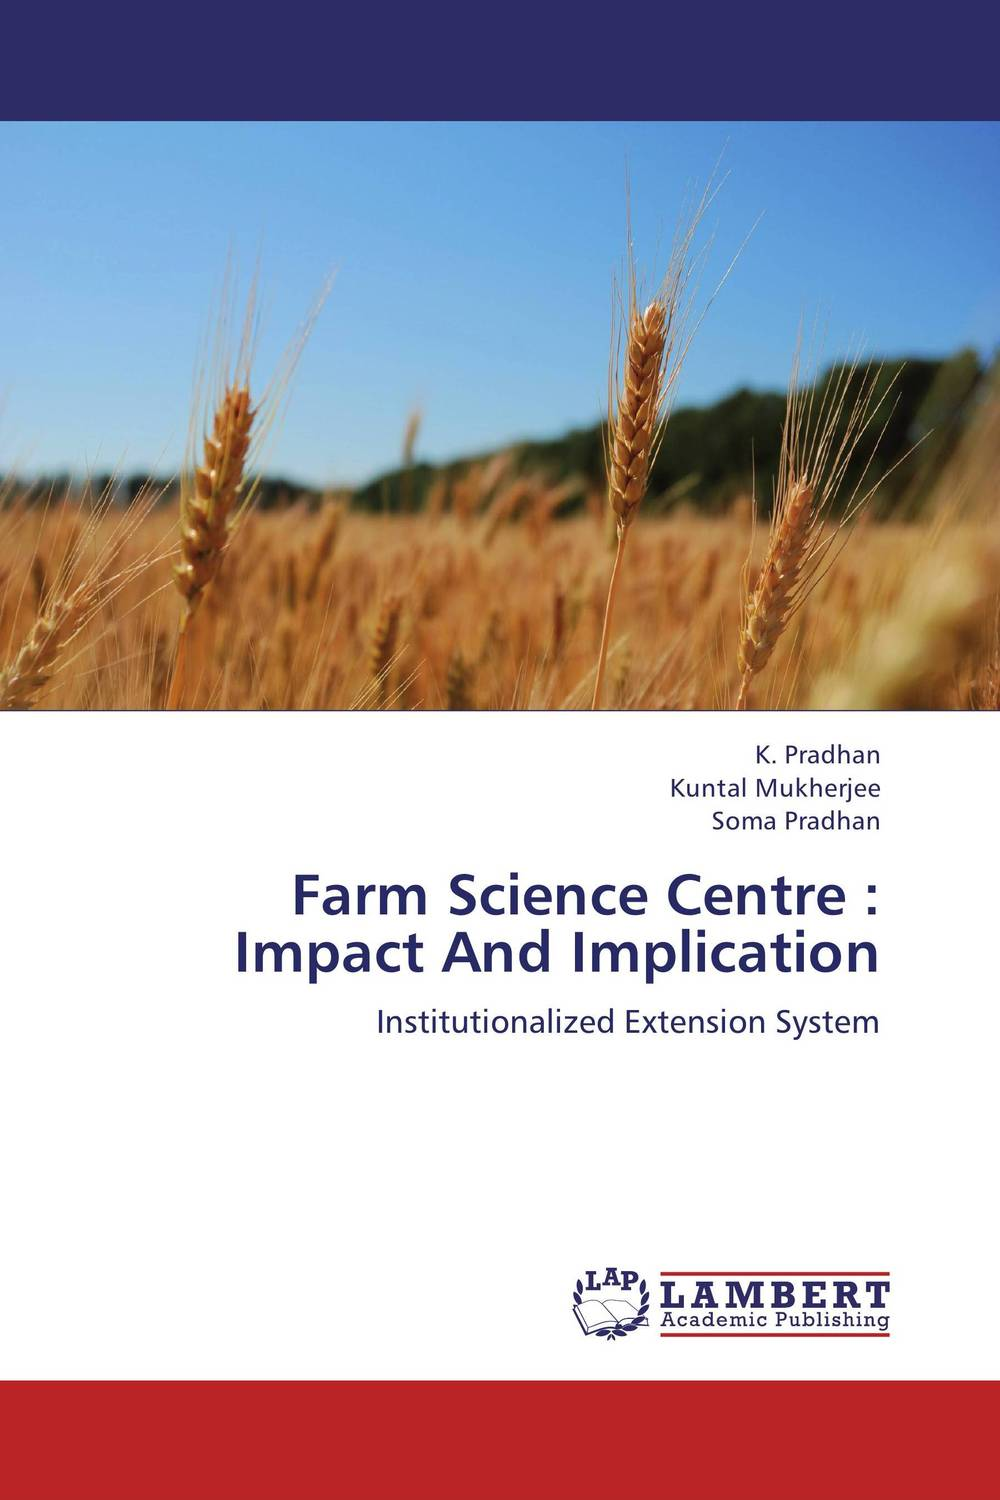 Farm Science Centre : Impact And Implication farm level adoption of water system innovations in semi arid areas